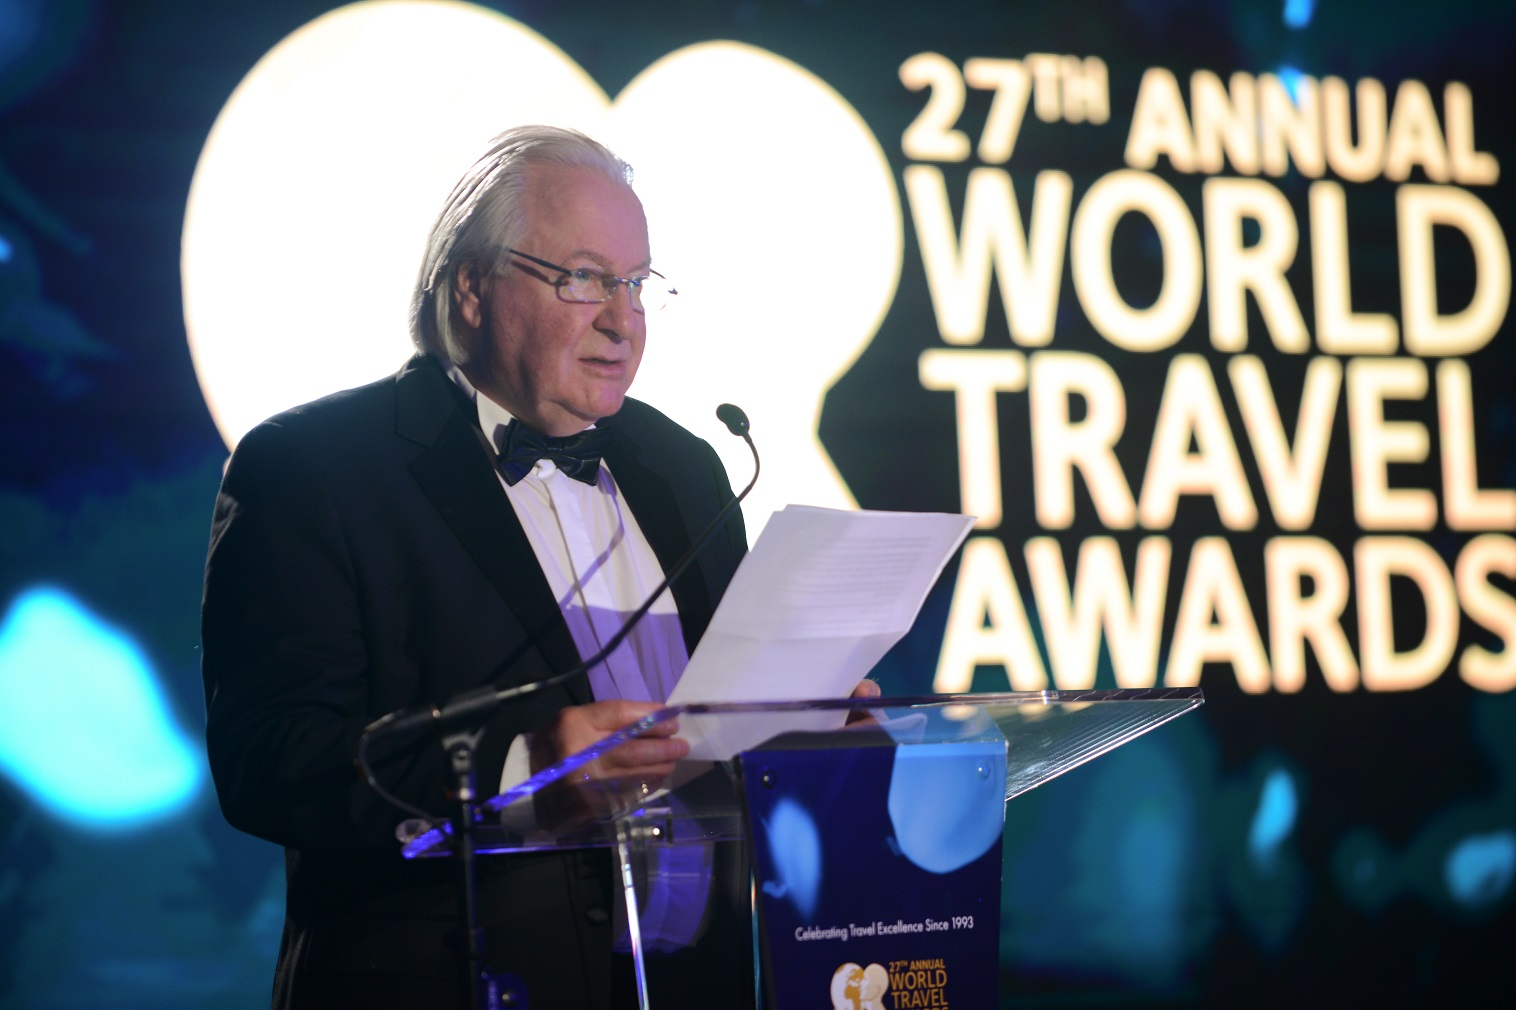 Travel industry professionals and consumers worldwide are invited to cast their votes for travel brands that they consider to be the very best in the world.